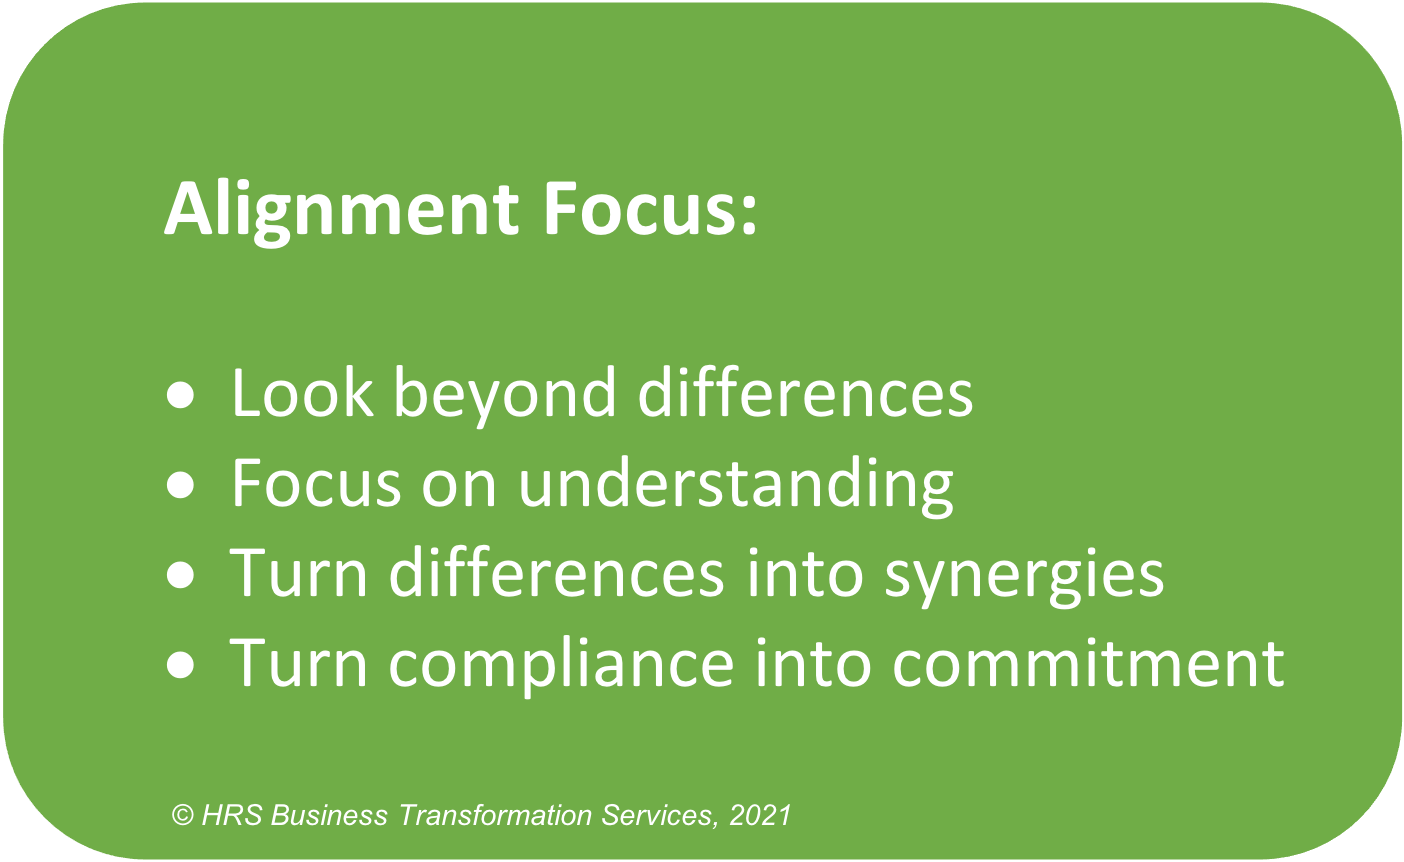 What is Alignment Focus and its elements